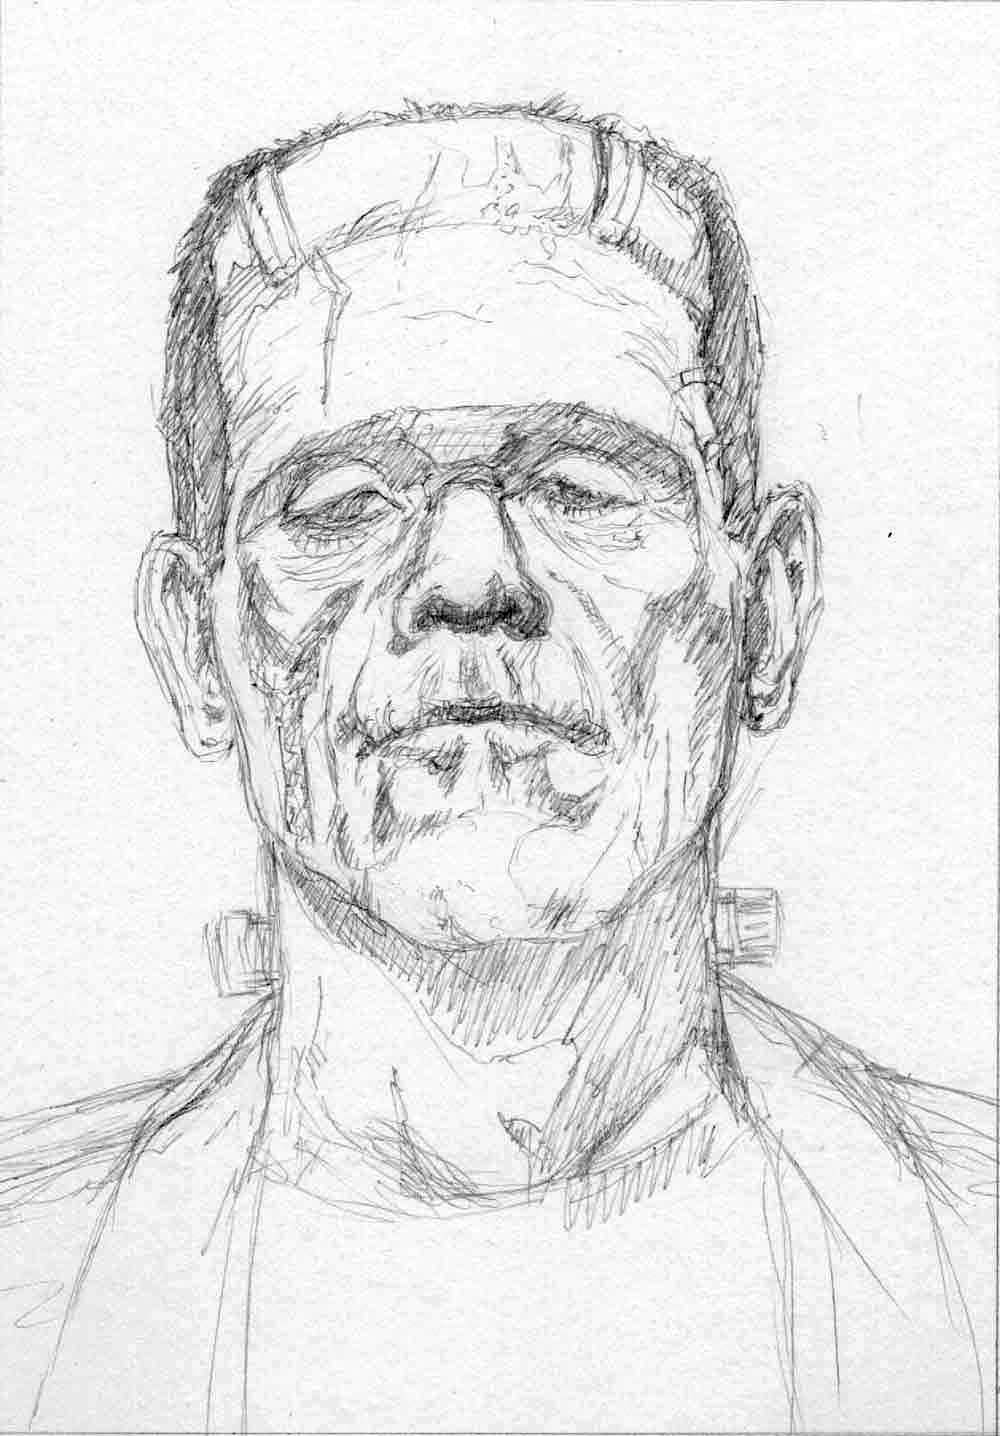 frankenstein epistolary Study frankenstein - critical quotes flashcards from alex coonar's class online,   critical quotes on the structure of 'frankenstein' and the epistolary form (2).